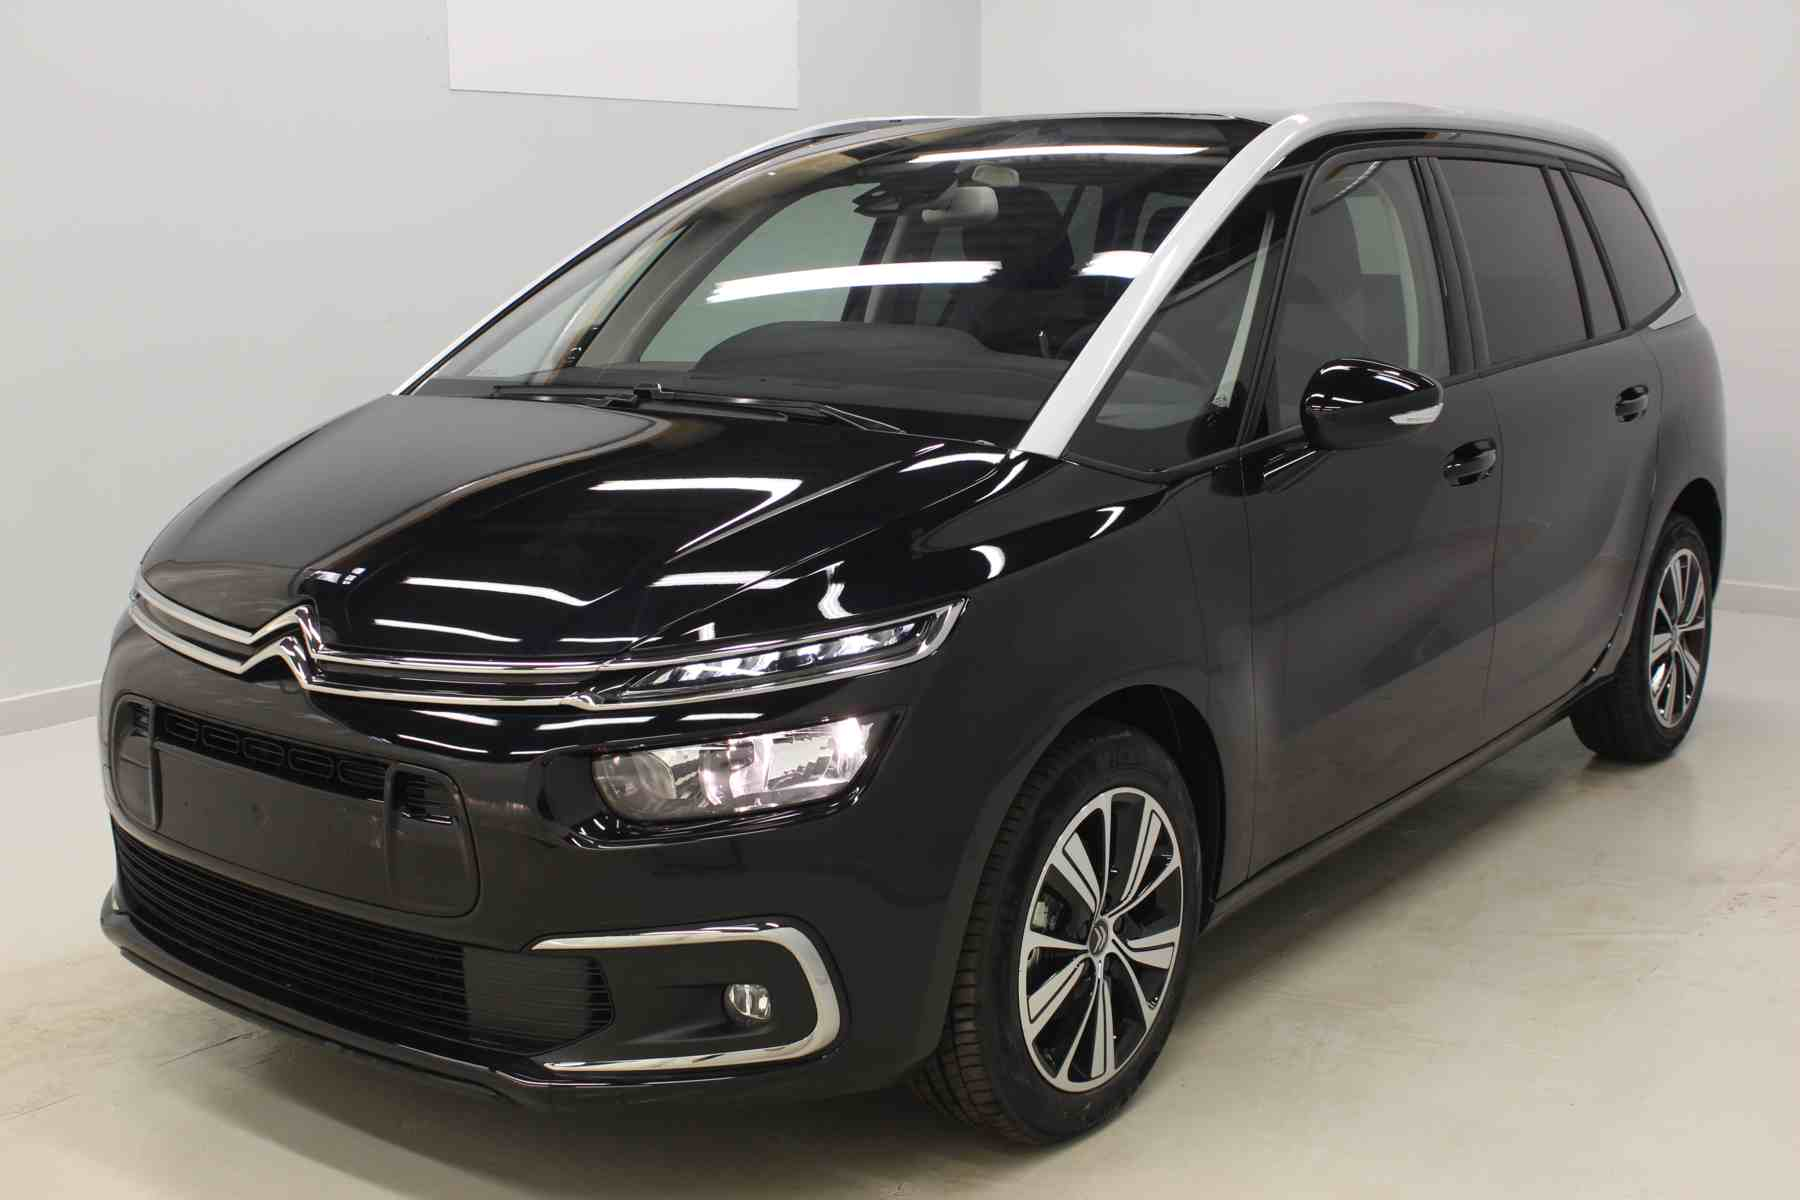 Acheter CITROEN Grand C4 SpaceTourer PureTech 130 S&S EAT8 Shine Noir Onyx + Vision 360 + Pack Drive Assist avec options chez un mandataire auto